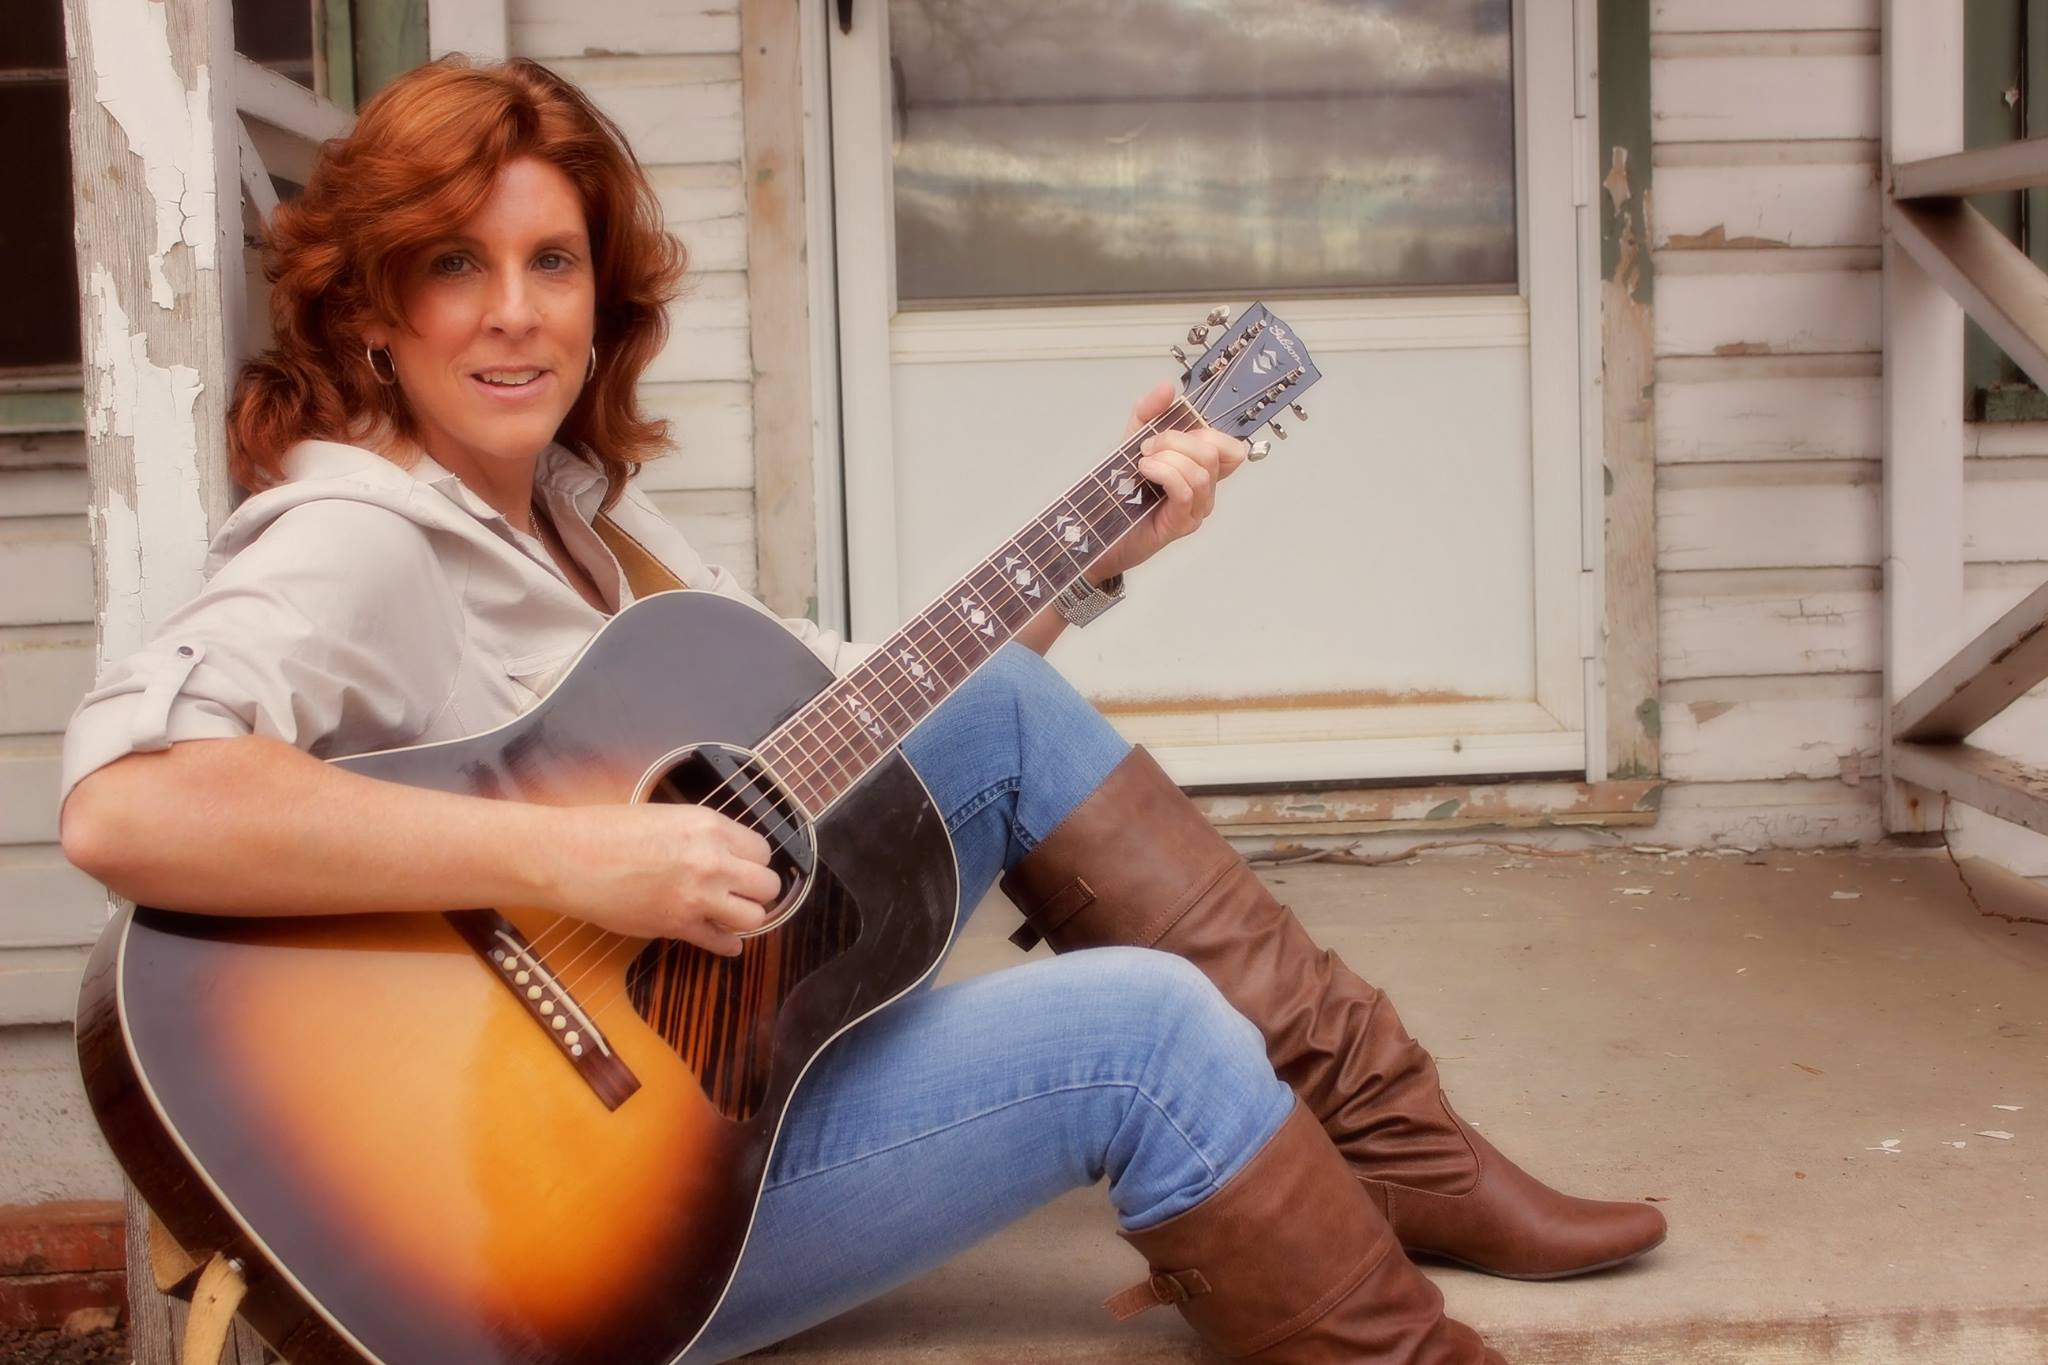 SONGWRITERS' CORNER: COMBO's 7th Annual Songwriting Contest Ends in 2 Weeks!